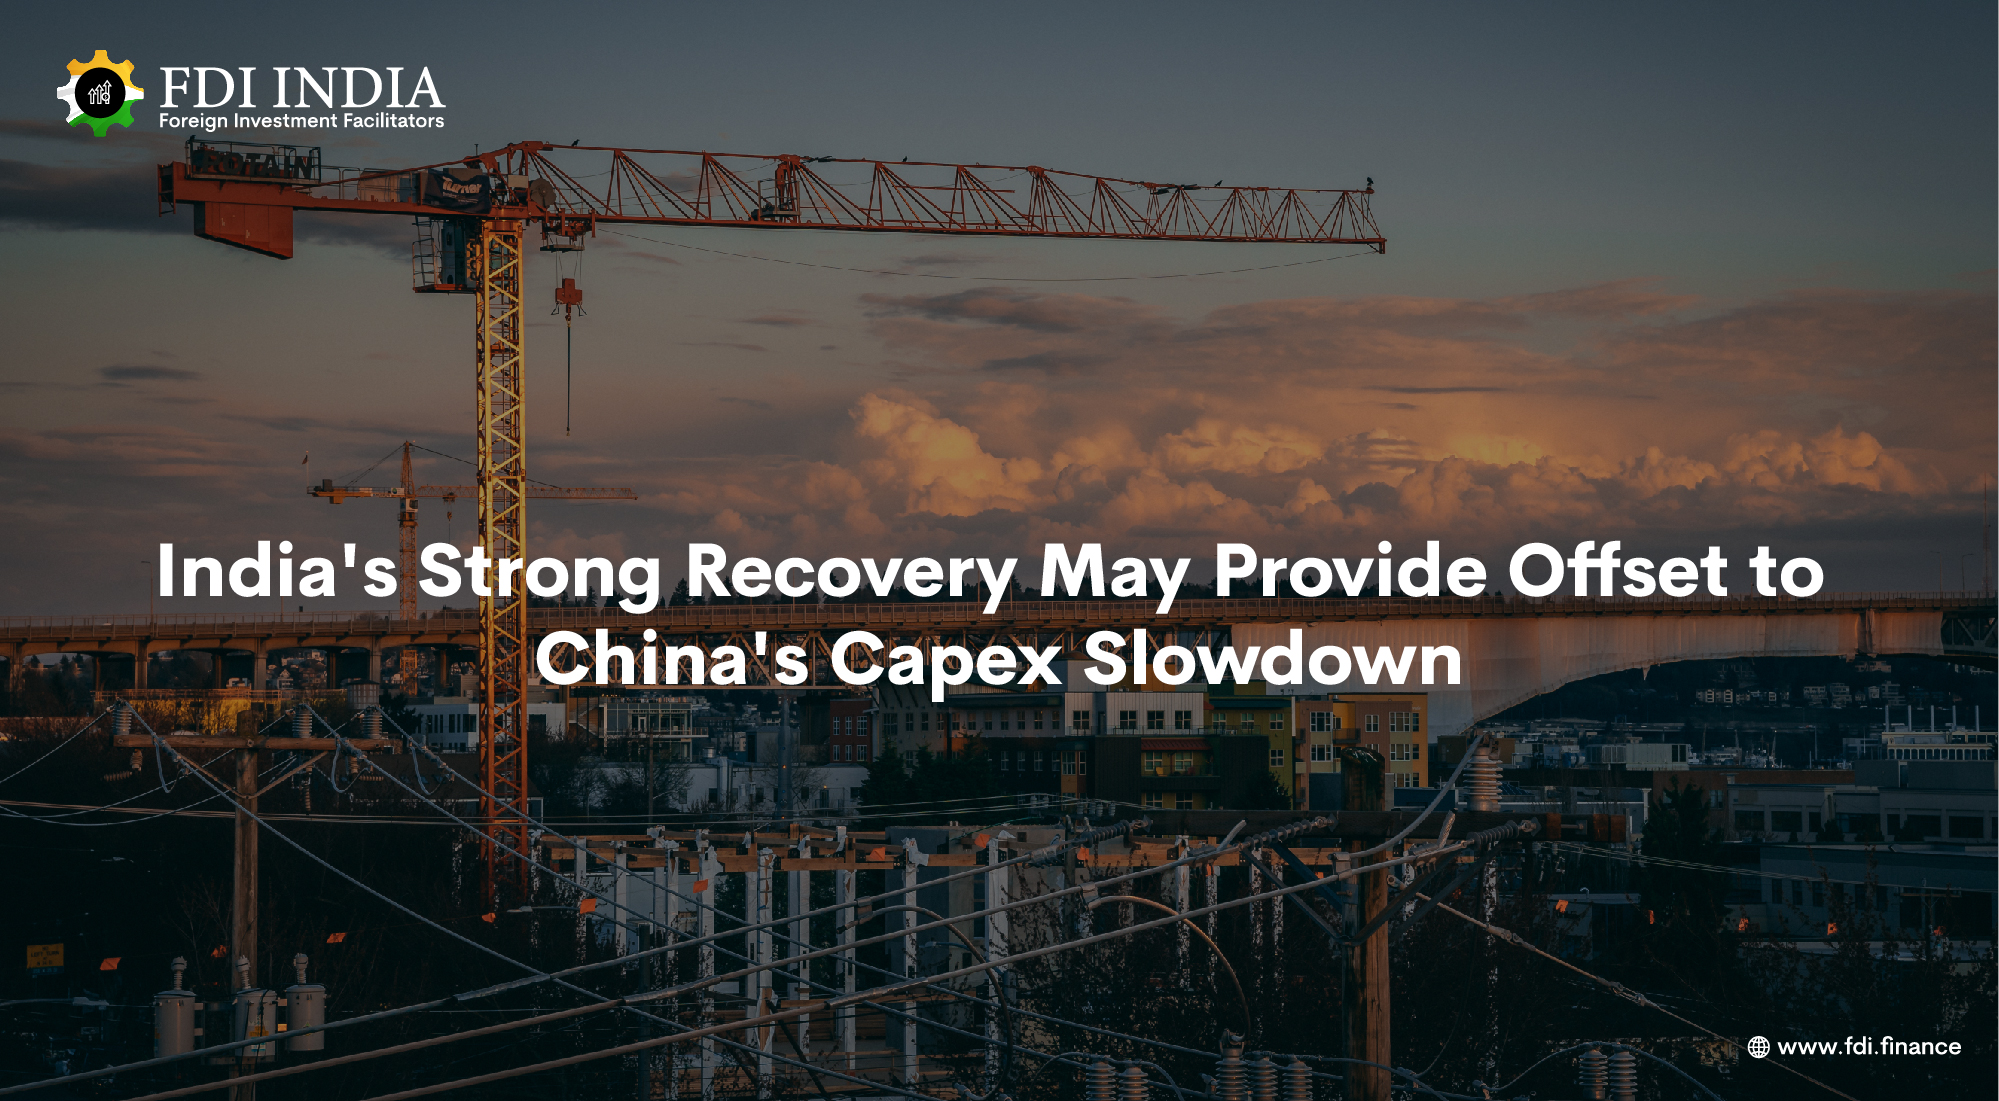 India's Strong Recovery May Provide Offset to China's Capex Slowdown